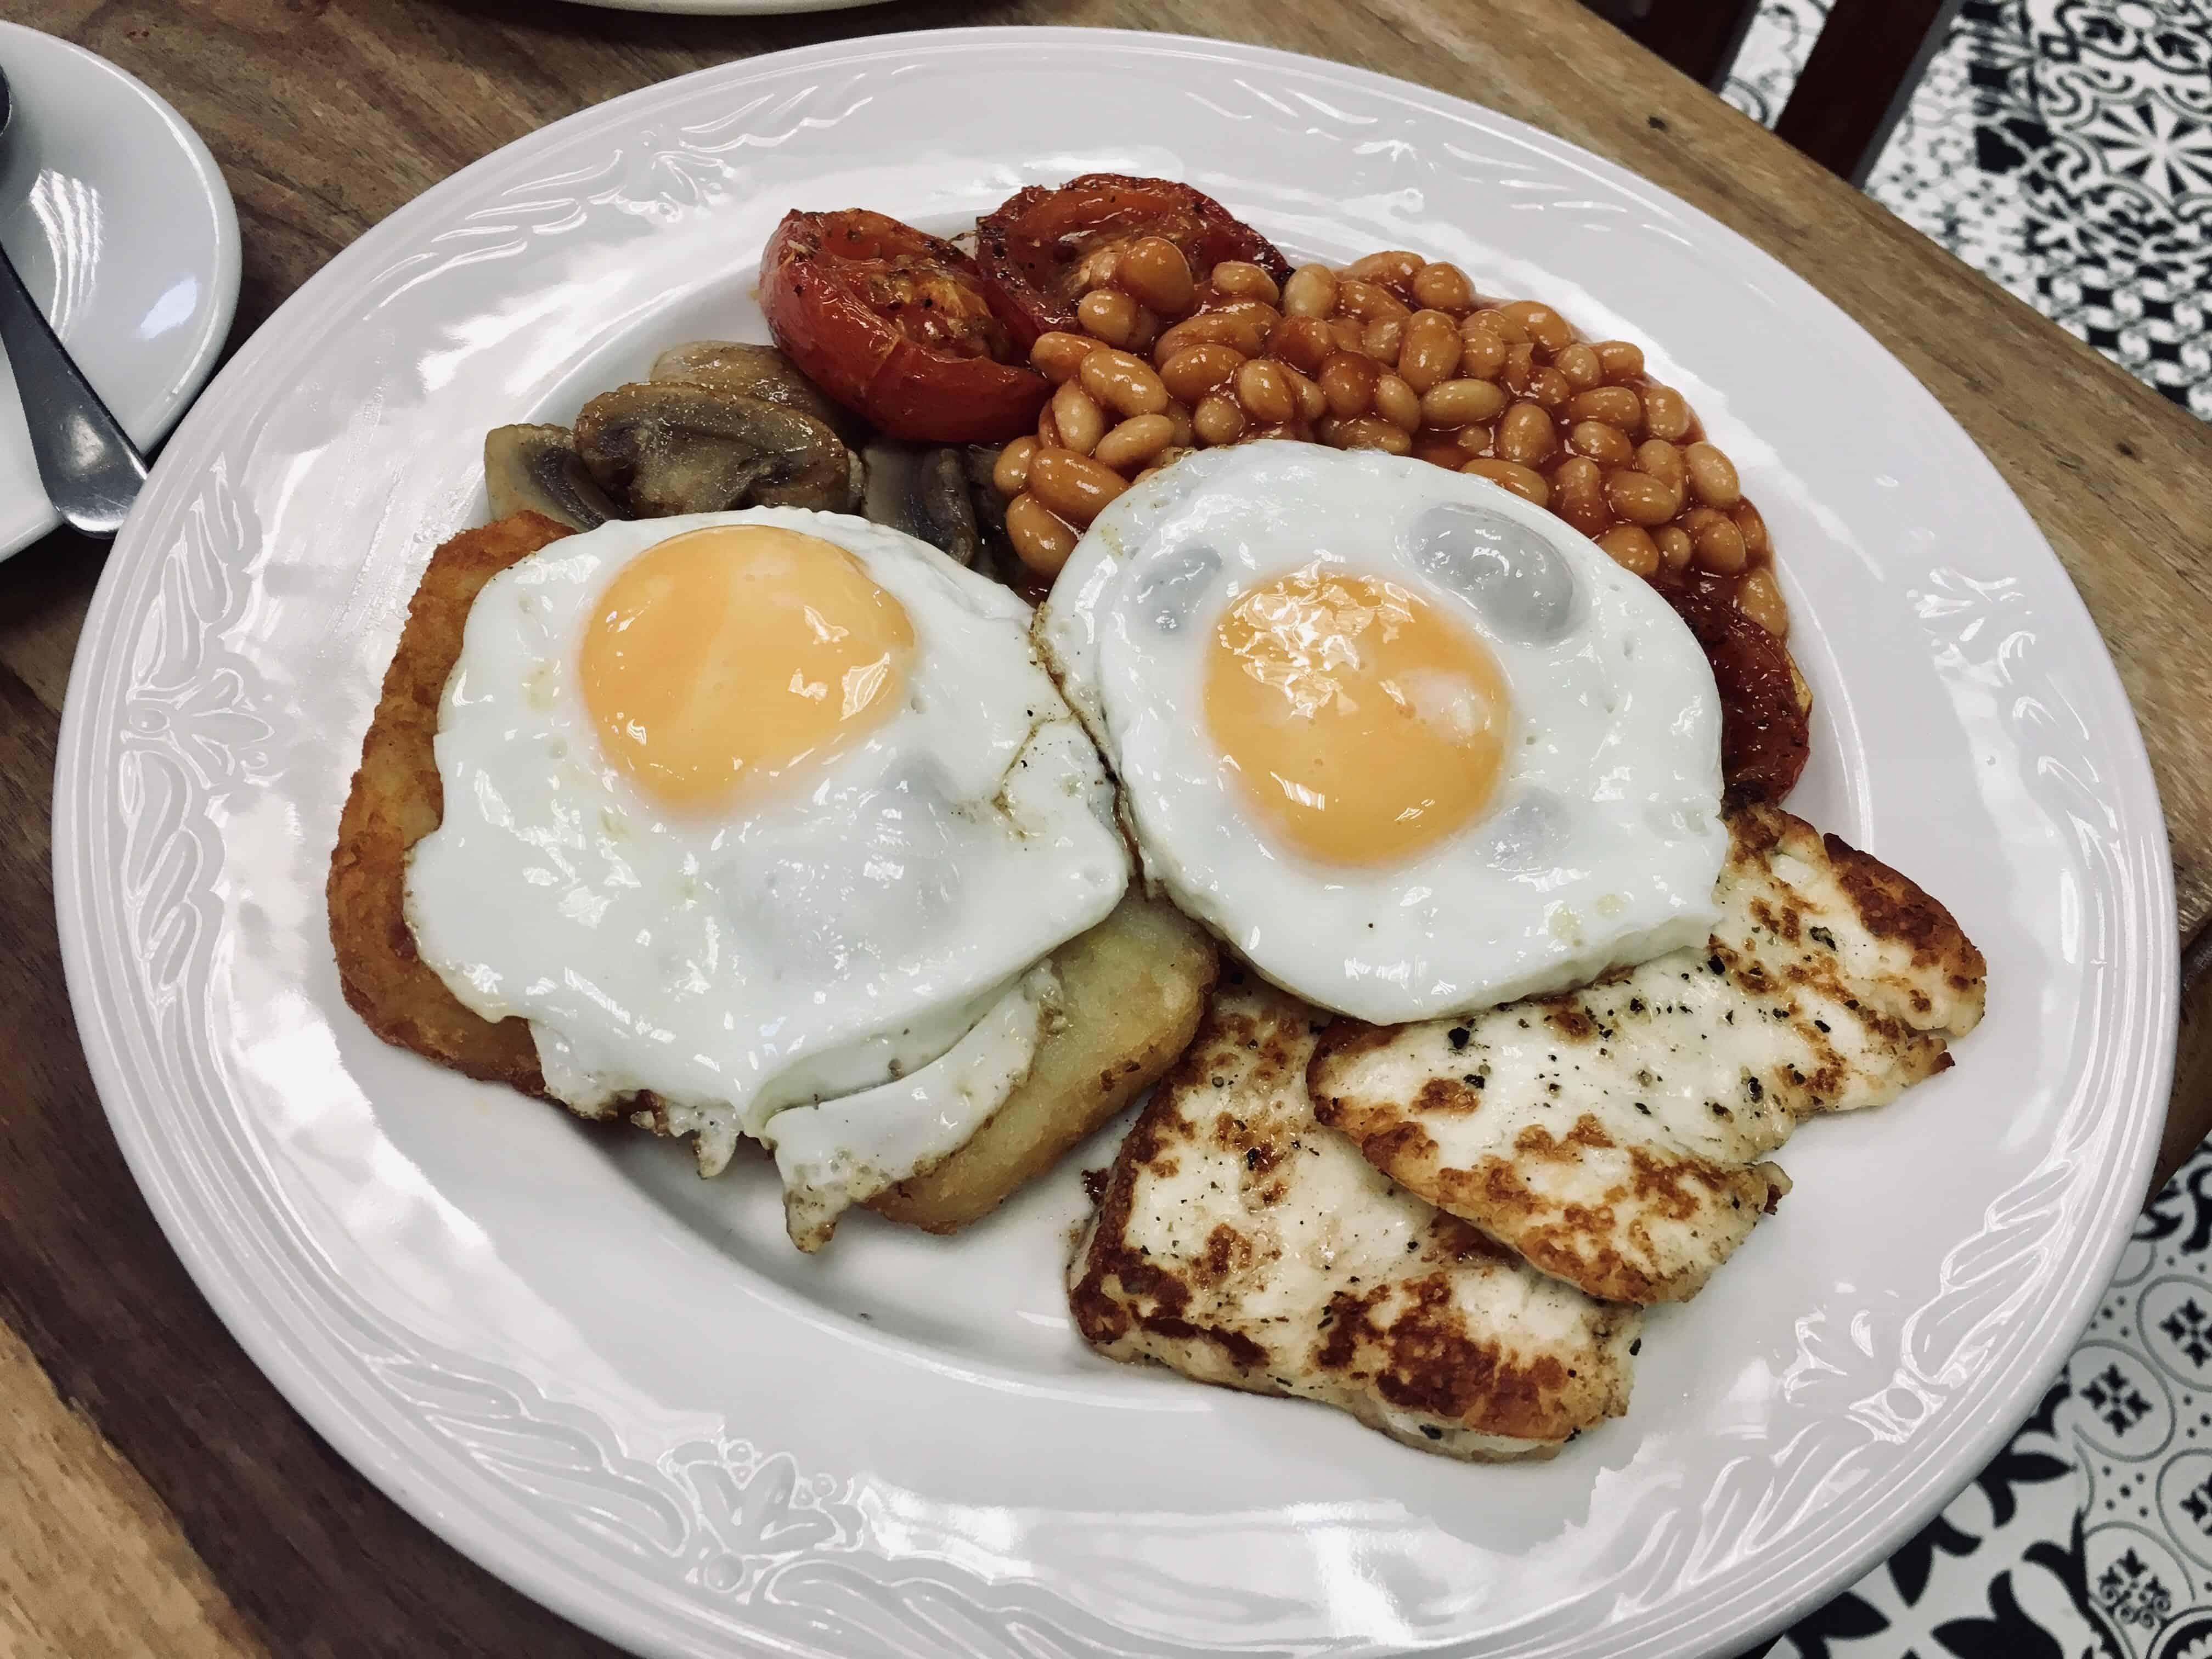 English Breakfast with eggs, halloumi cheese, tomatoes, beans, hashbrowns, and mushrooms - One of my favorite vegetarian european dishes